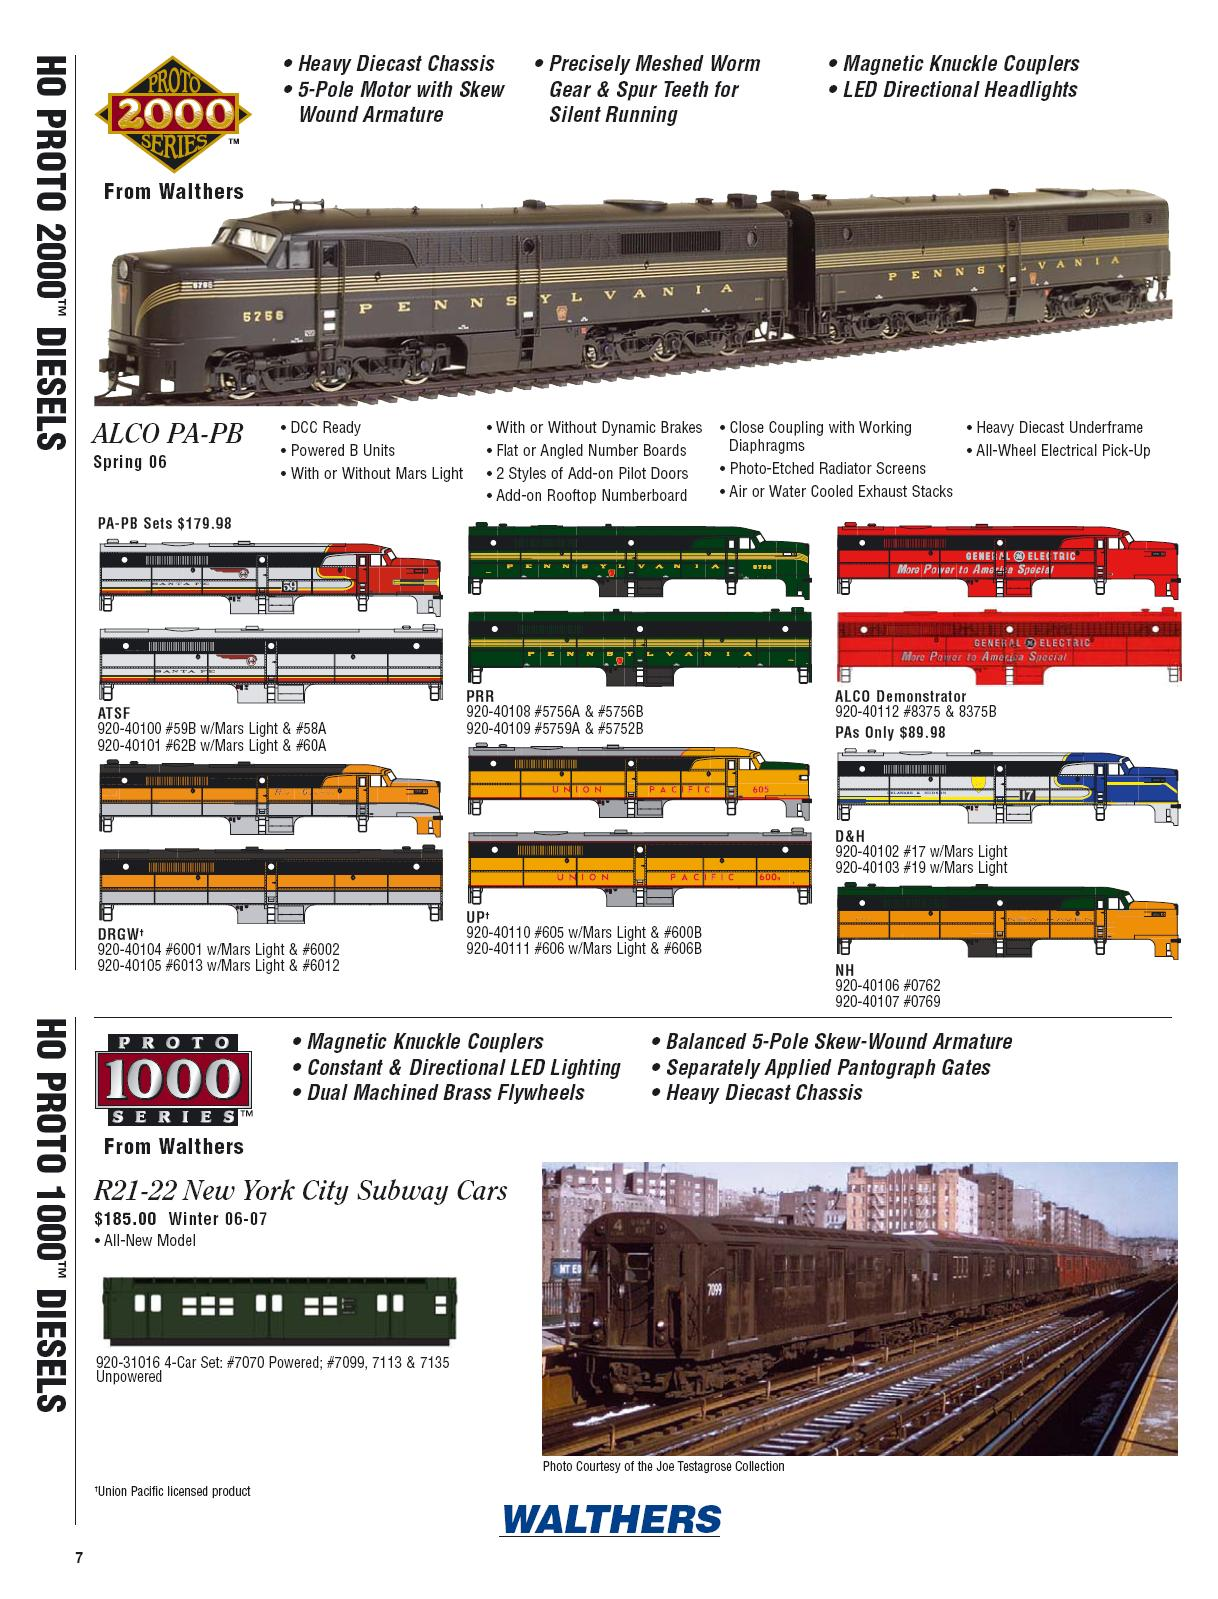 Walthers 2006 Cataloge Diesels page 4